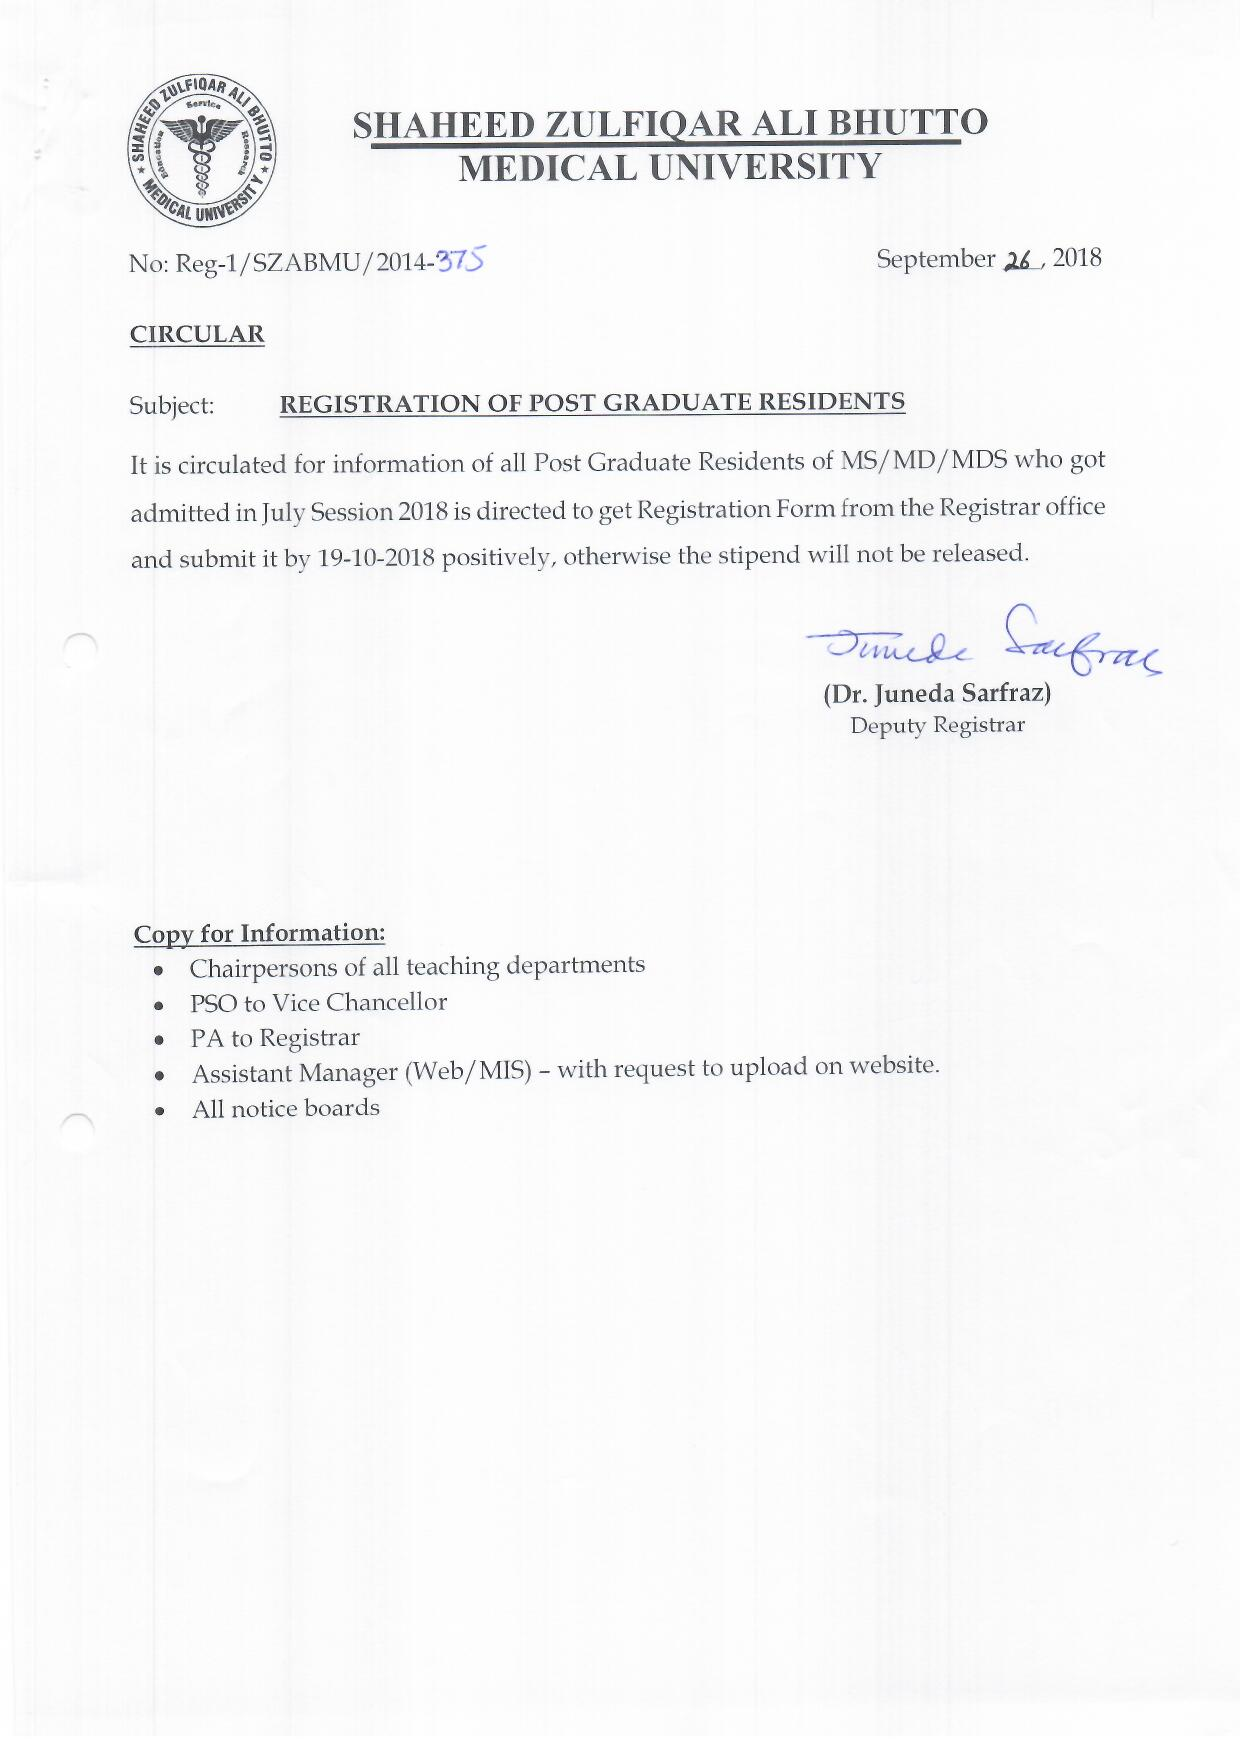 Registration Of Post Graduate Residents Session July 2018